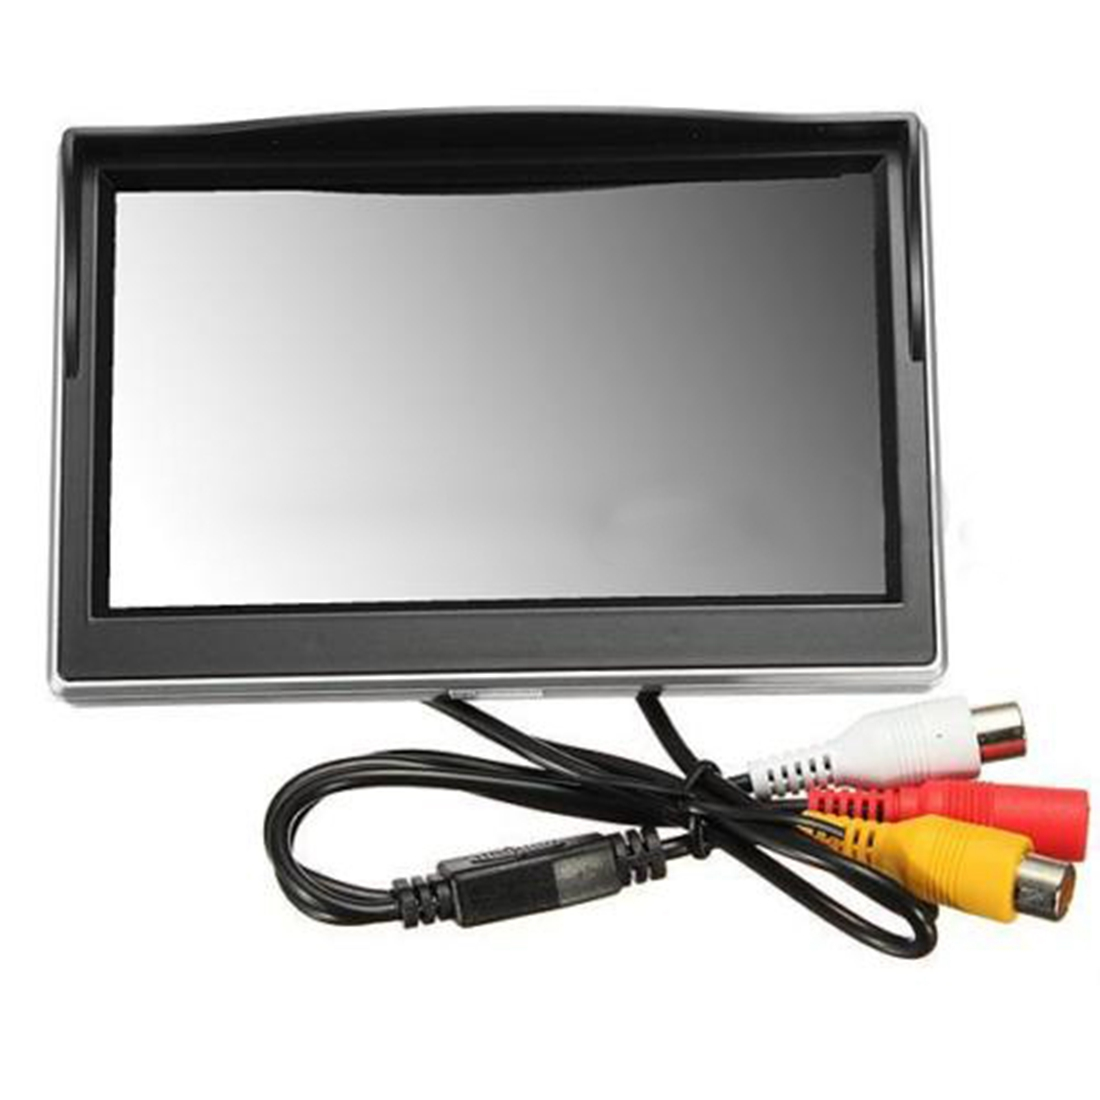 AUTO New 5 800 480 TFT LCD HD Screen Monitor for Car Rear Rearview Backup font